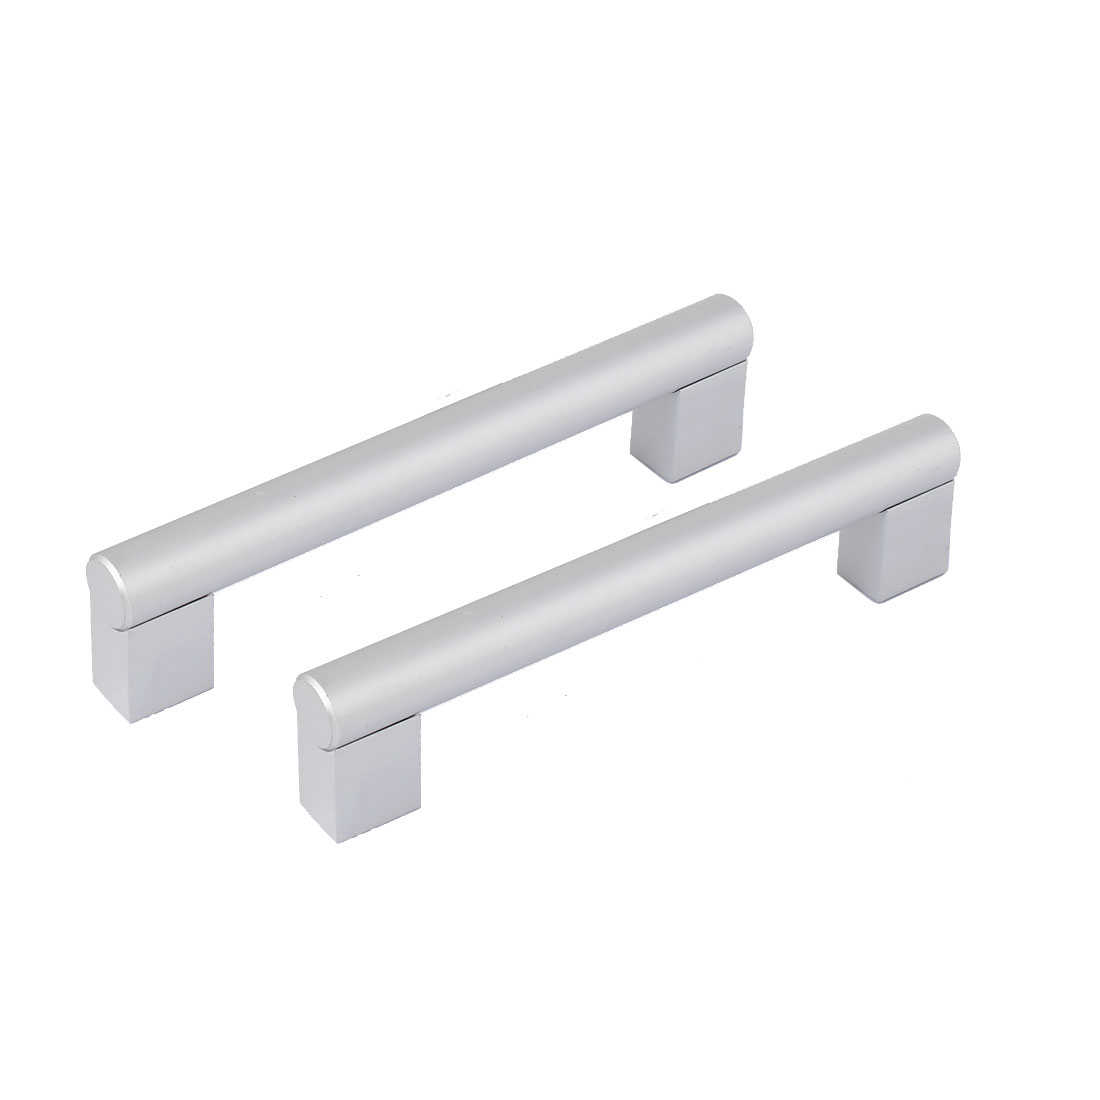 128mm Mounting Hole Center Furniture Cabinet Door Pull Handle Silver Tone 2pcs